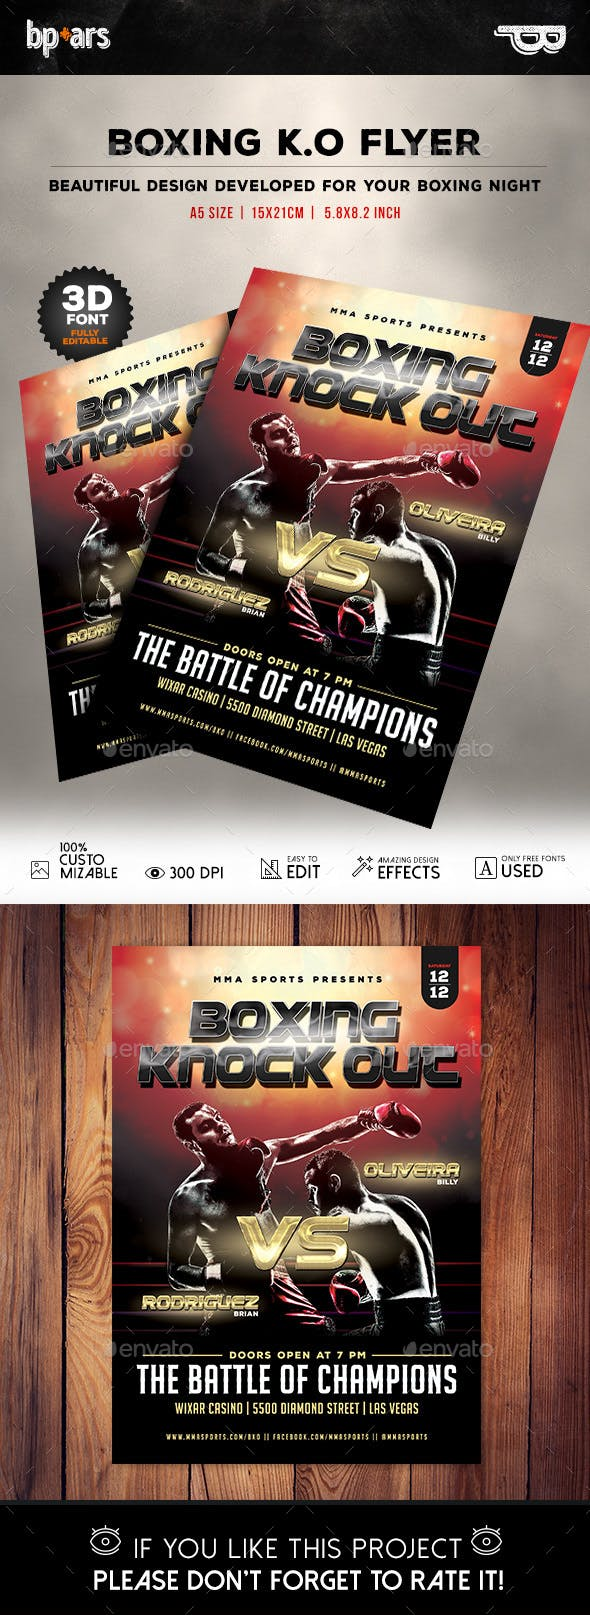 boxing fight flyer template by bp ars graphicriver